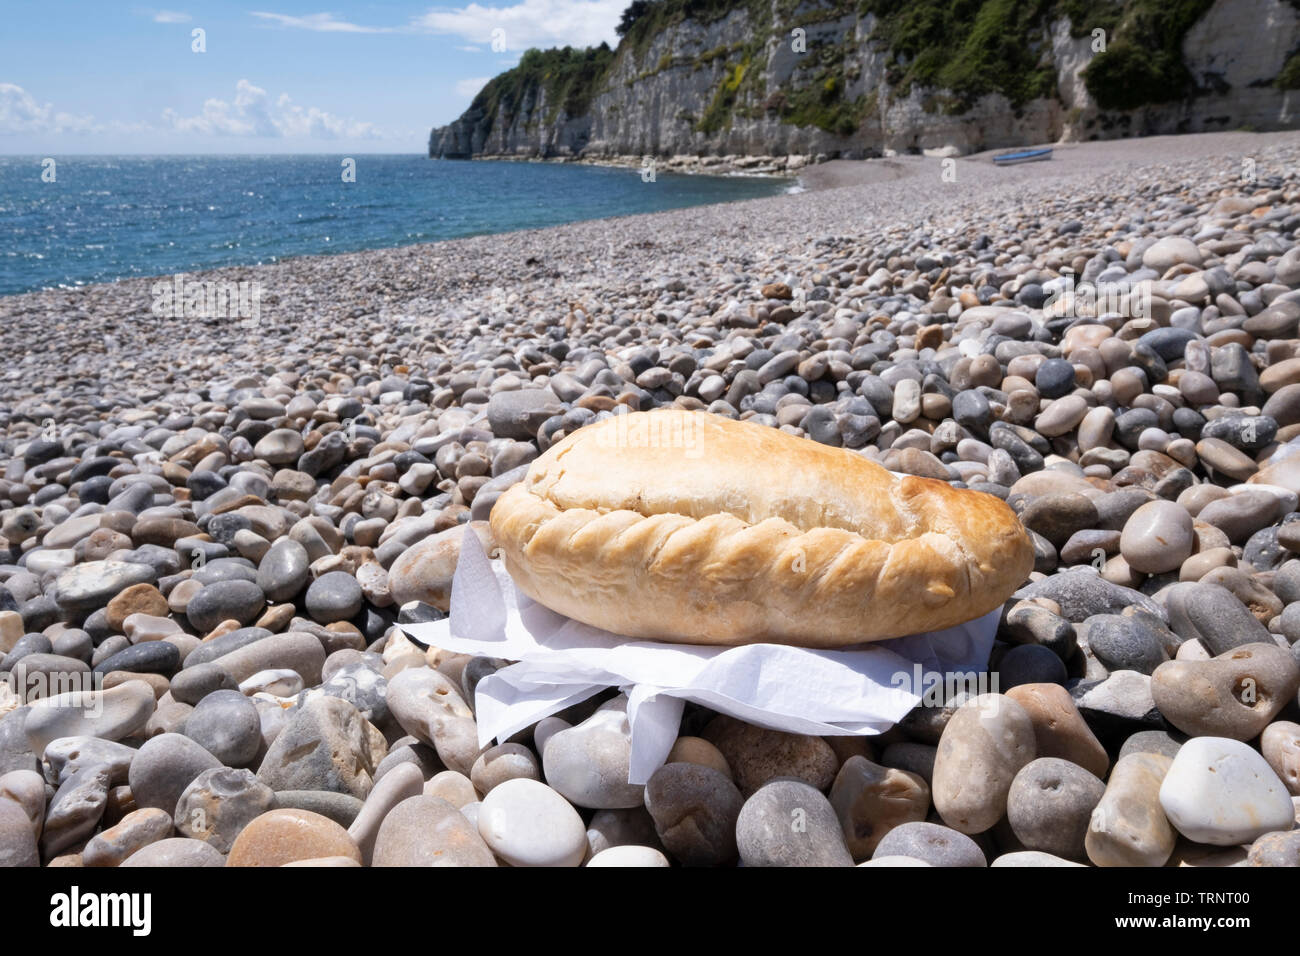 Cornish pasty on shingle beach with sea in background Stock Photo